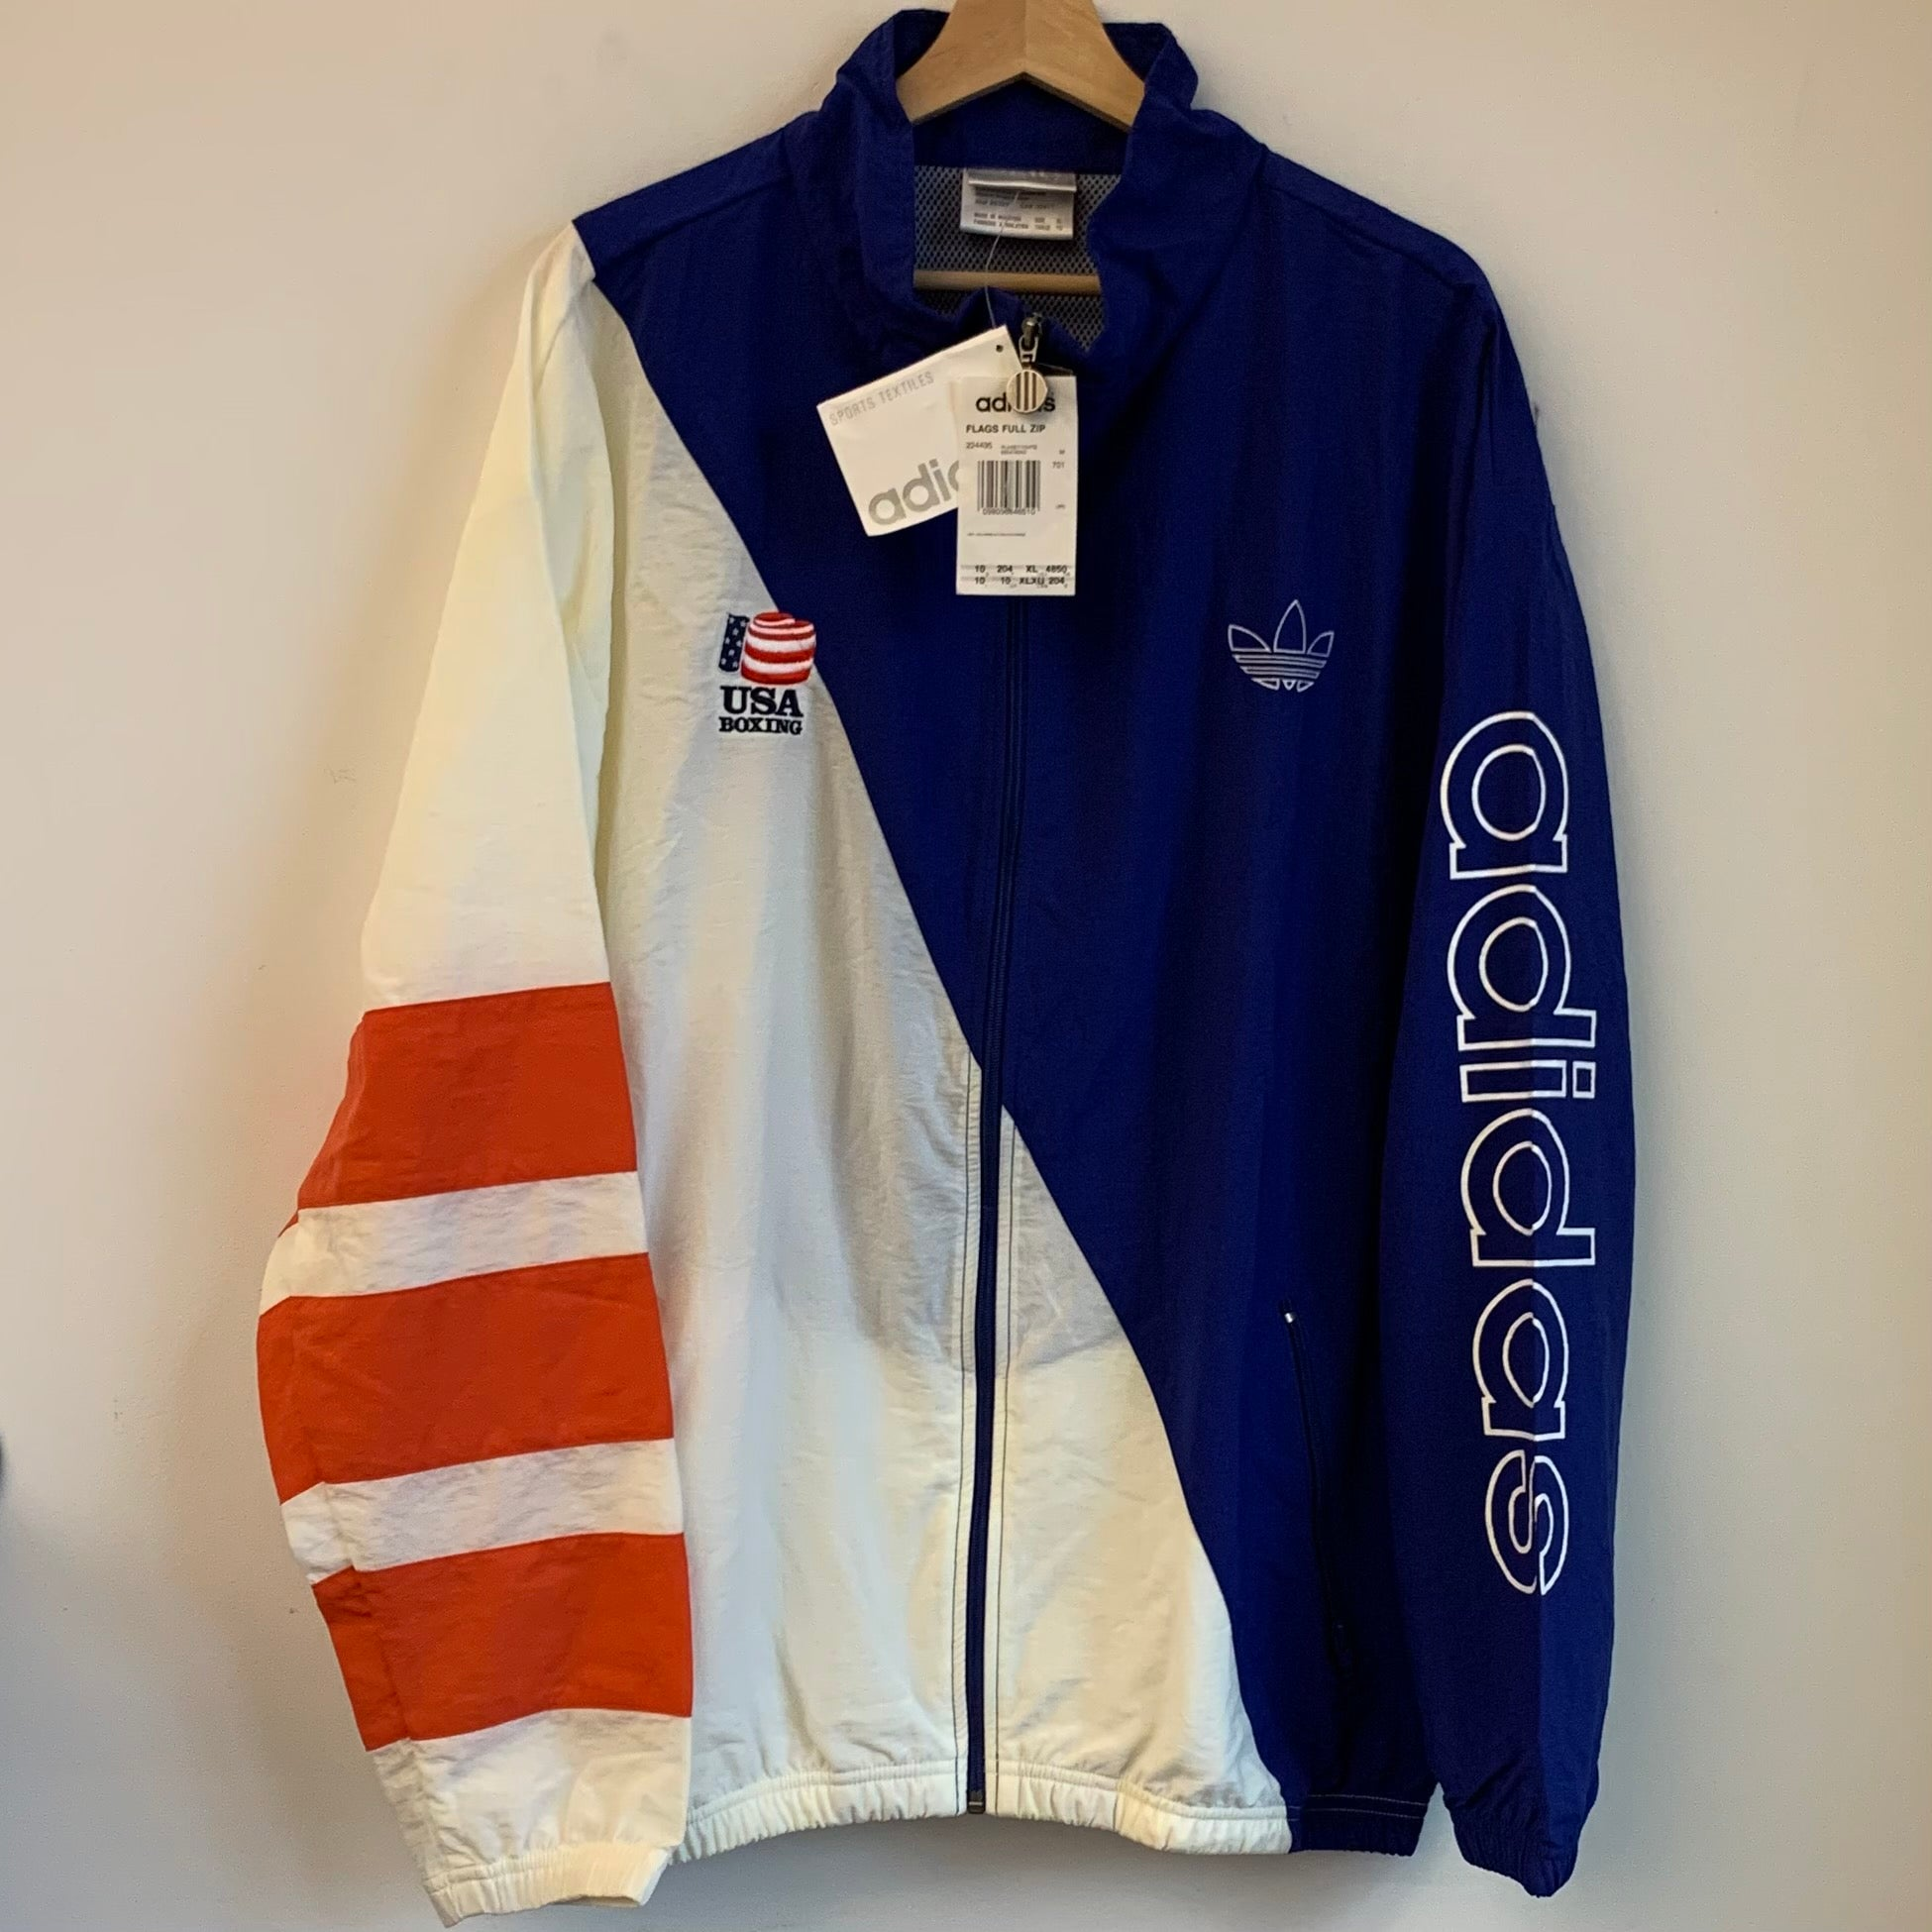 adidas USA Boxing Windbreaker Jacket